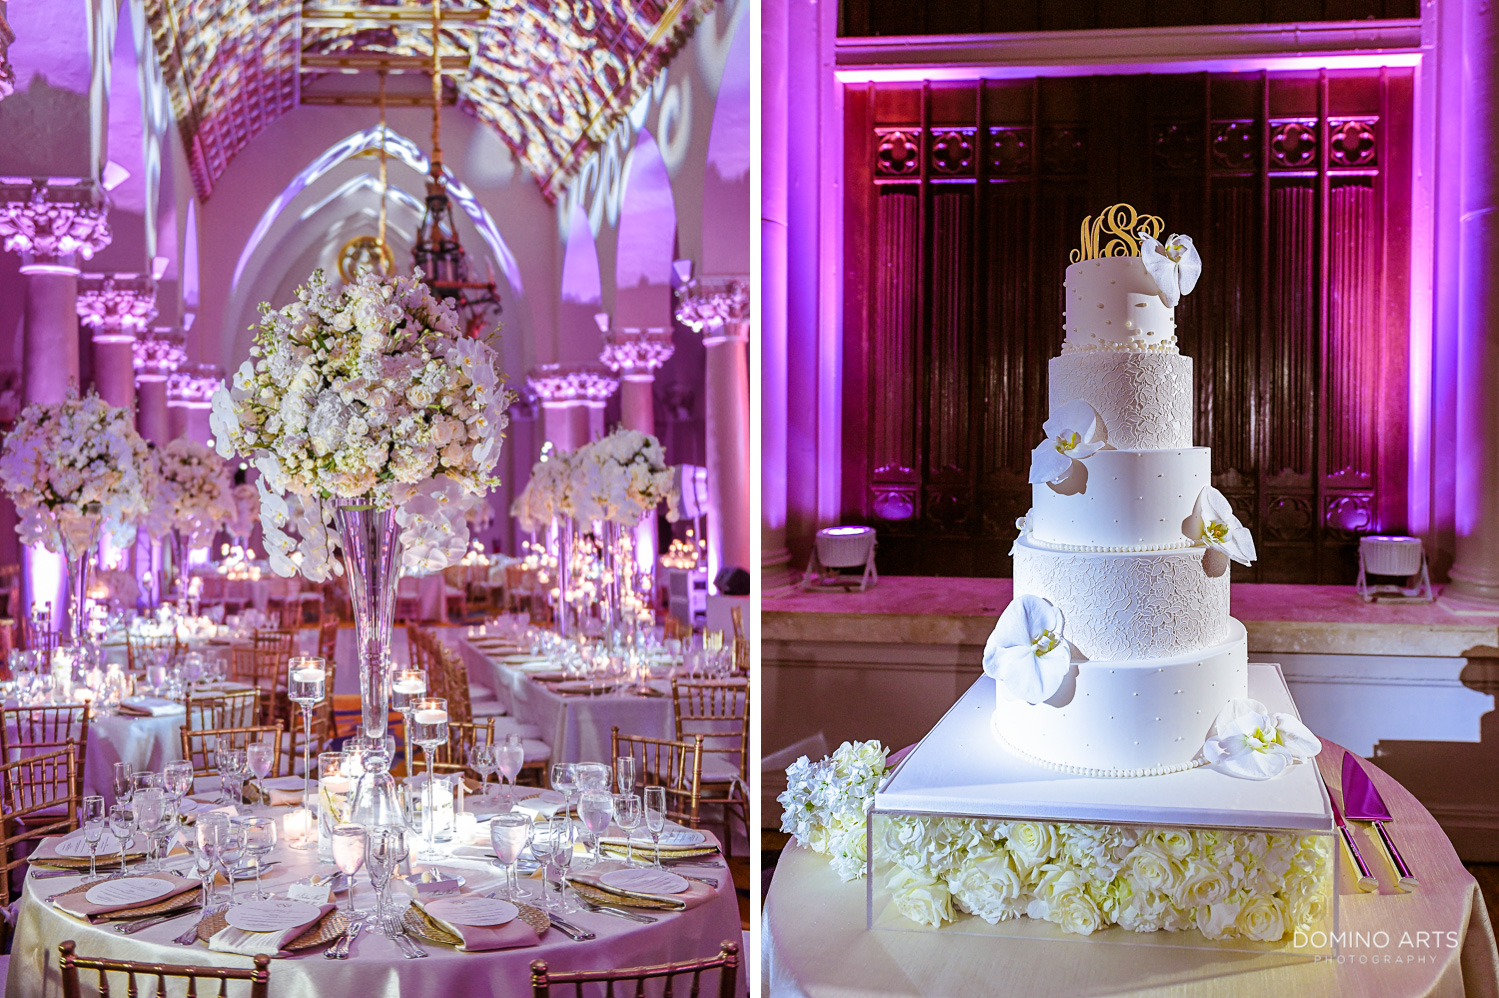 Wedding cake picture in contemporary and elegant design at Boca Raton Resort